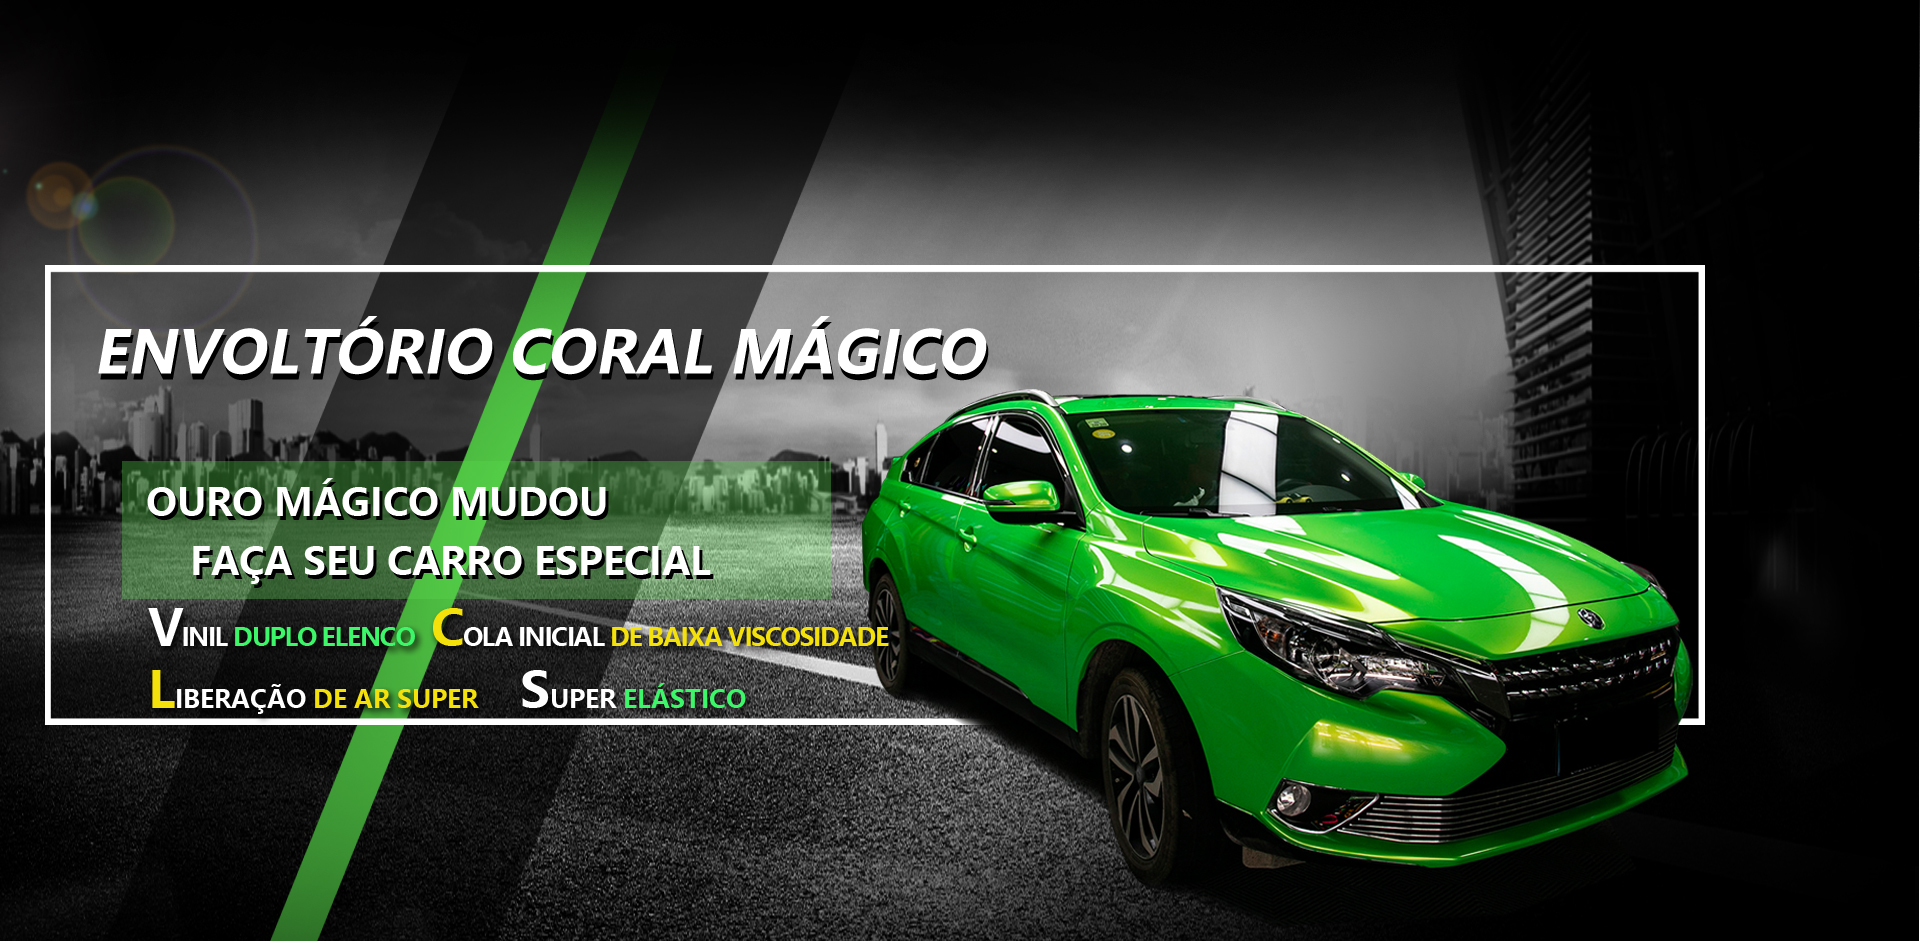 CARLIKE CL-MC Película de envolvimento do carro automotivo do vinil coral mágico